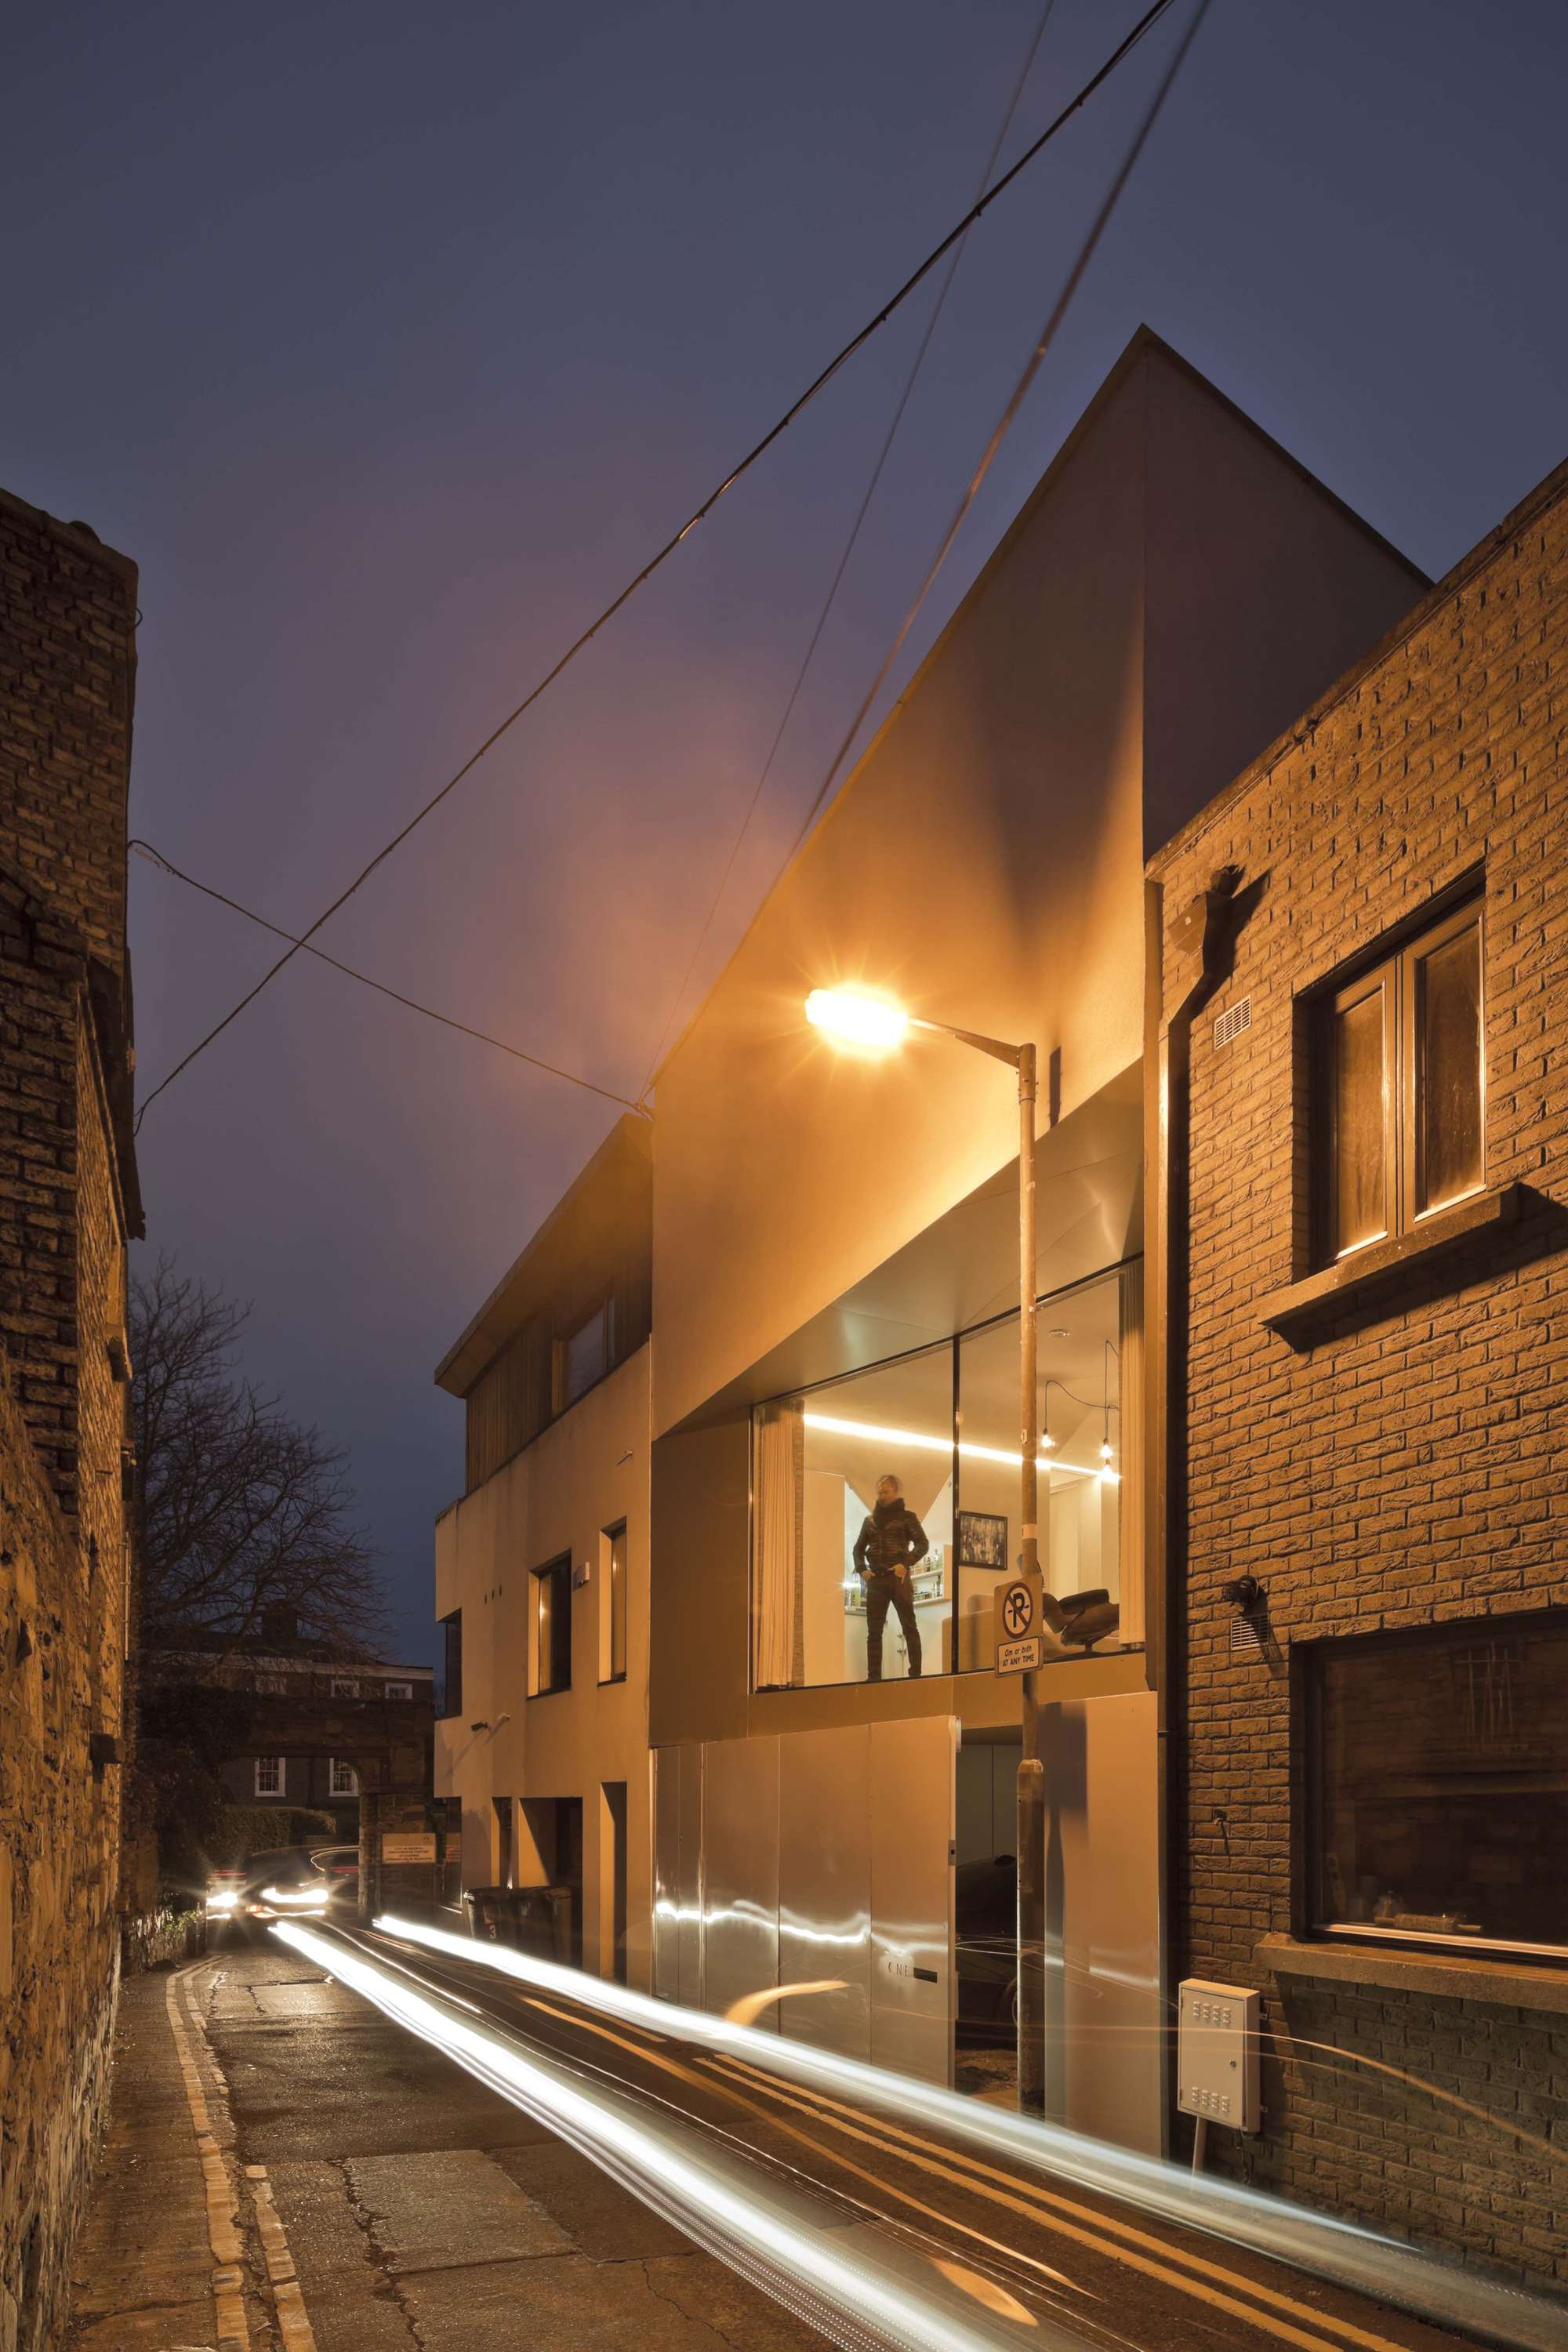 Architecture Of A Mom 15 Easy Diy Gift Ideas: Prices Lane / ODOS Architects